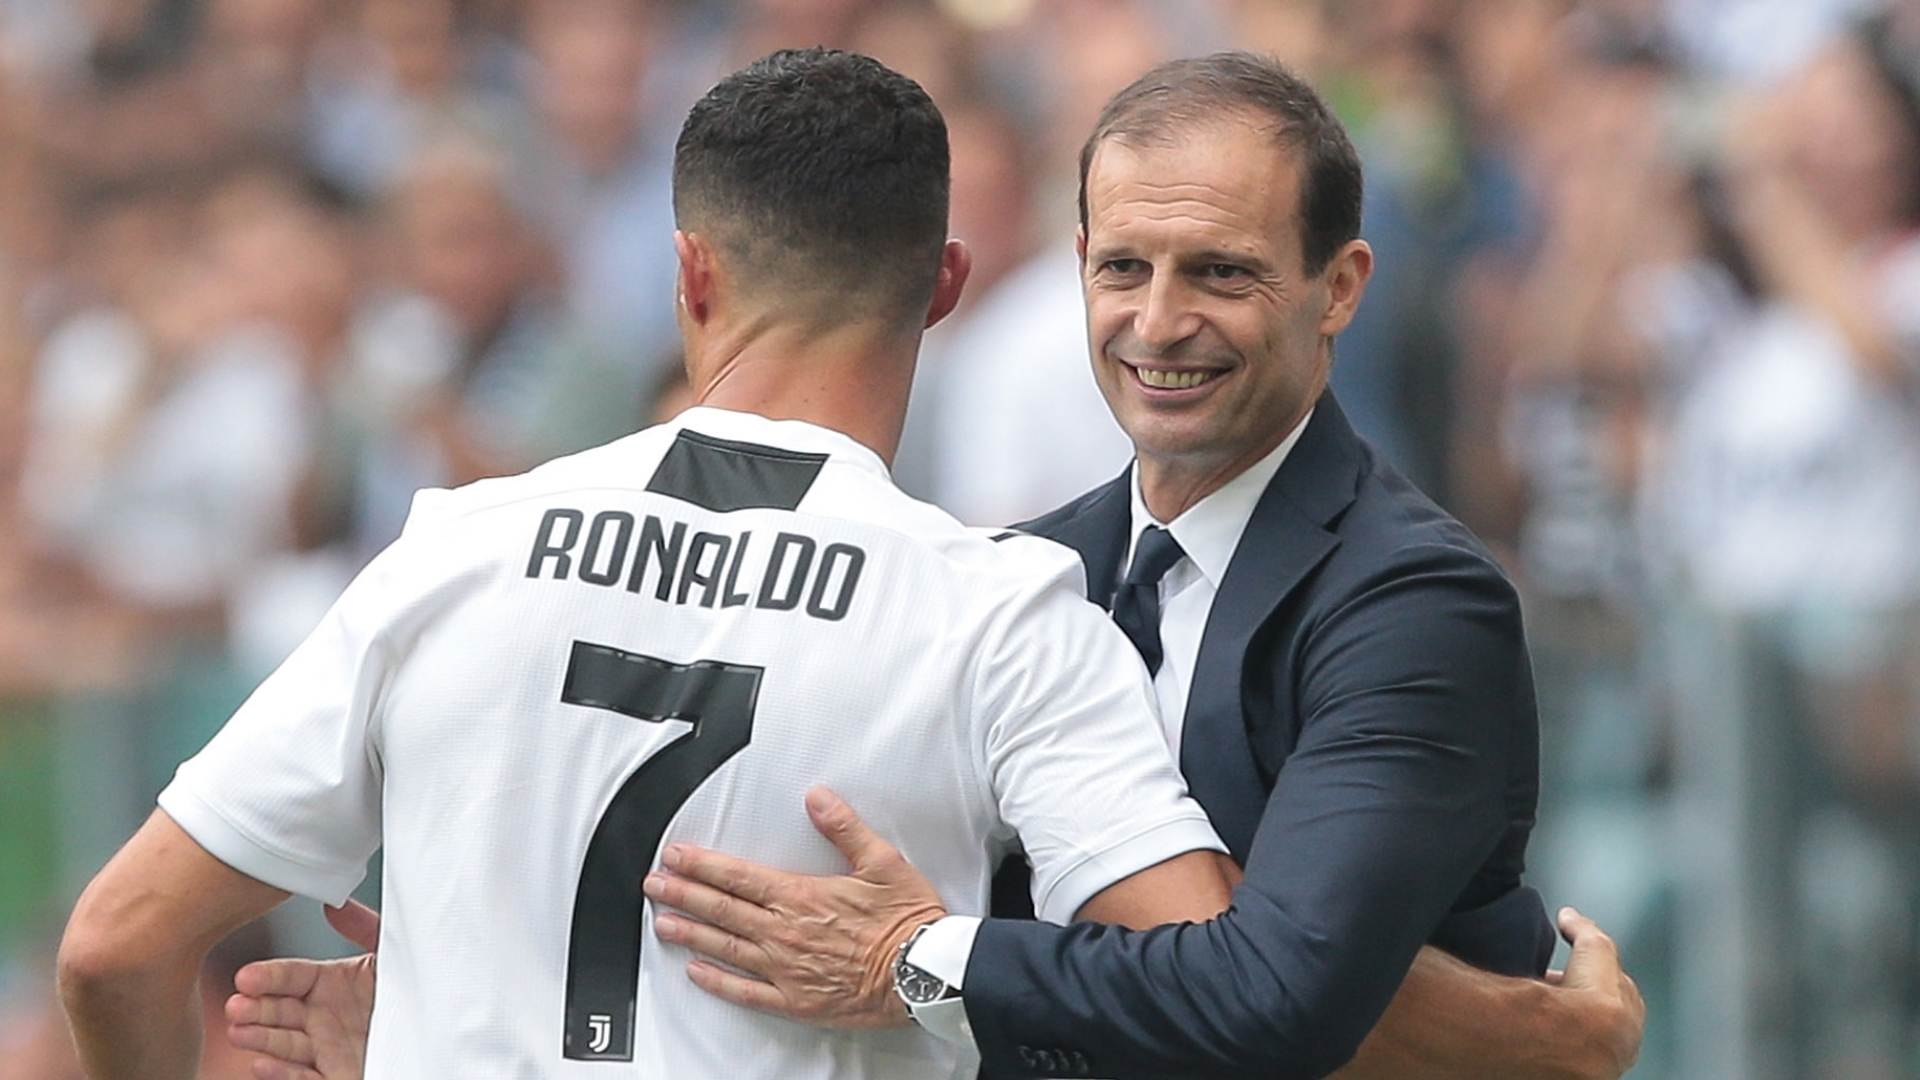 Allegri's stock with Juventus fans will rise over time, says Zaccheroni